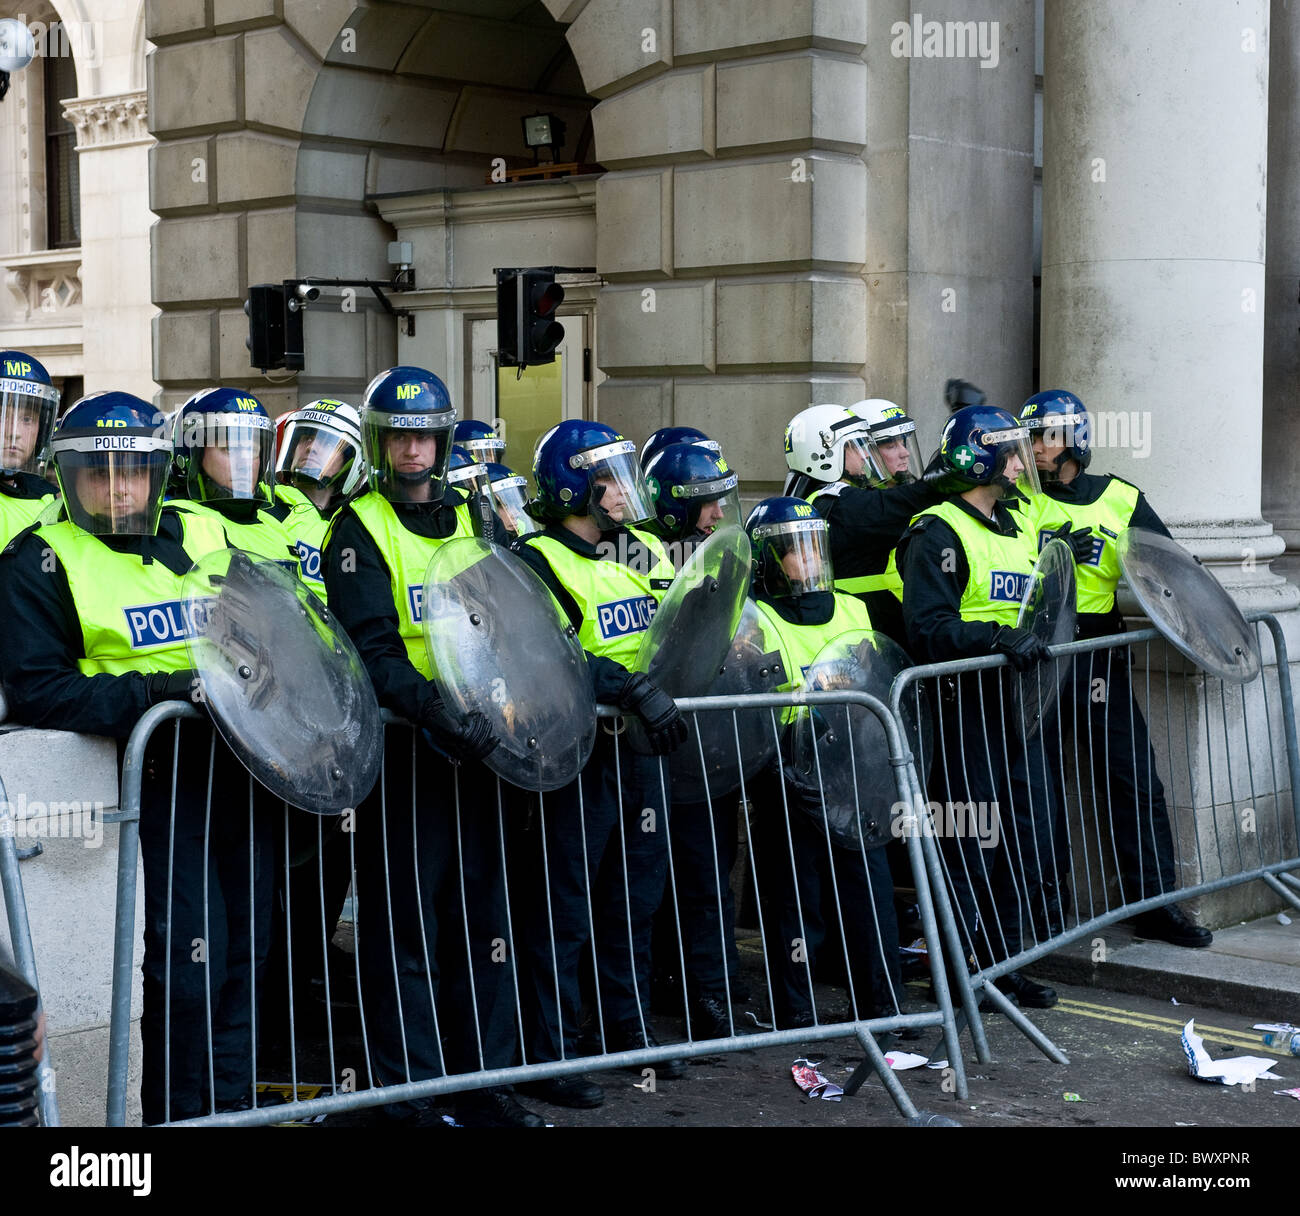 Metropolitan Police in riot gear at a demonstration in London. - Stock Image